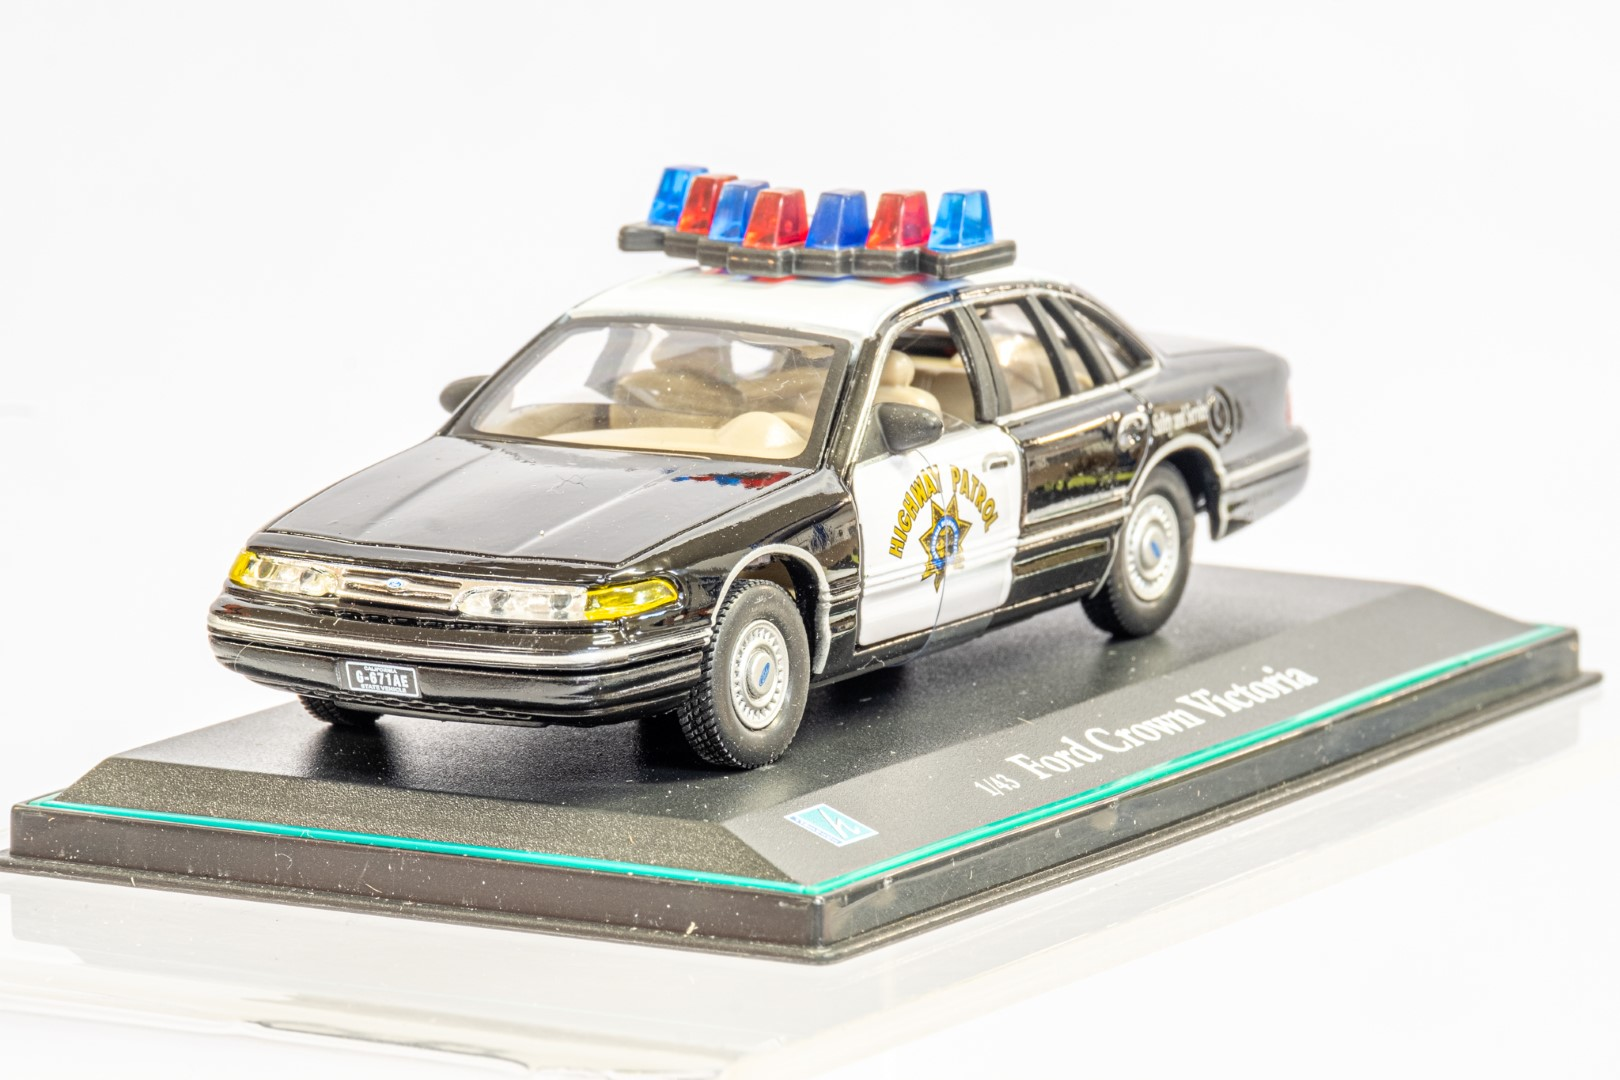 2 x American Police Cars - Image 6 of 12